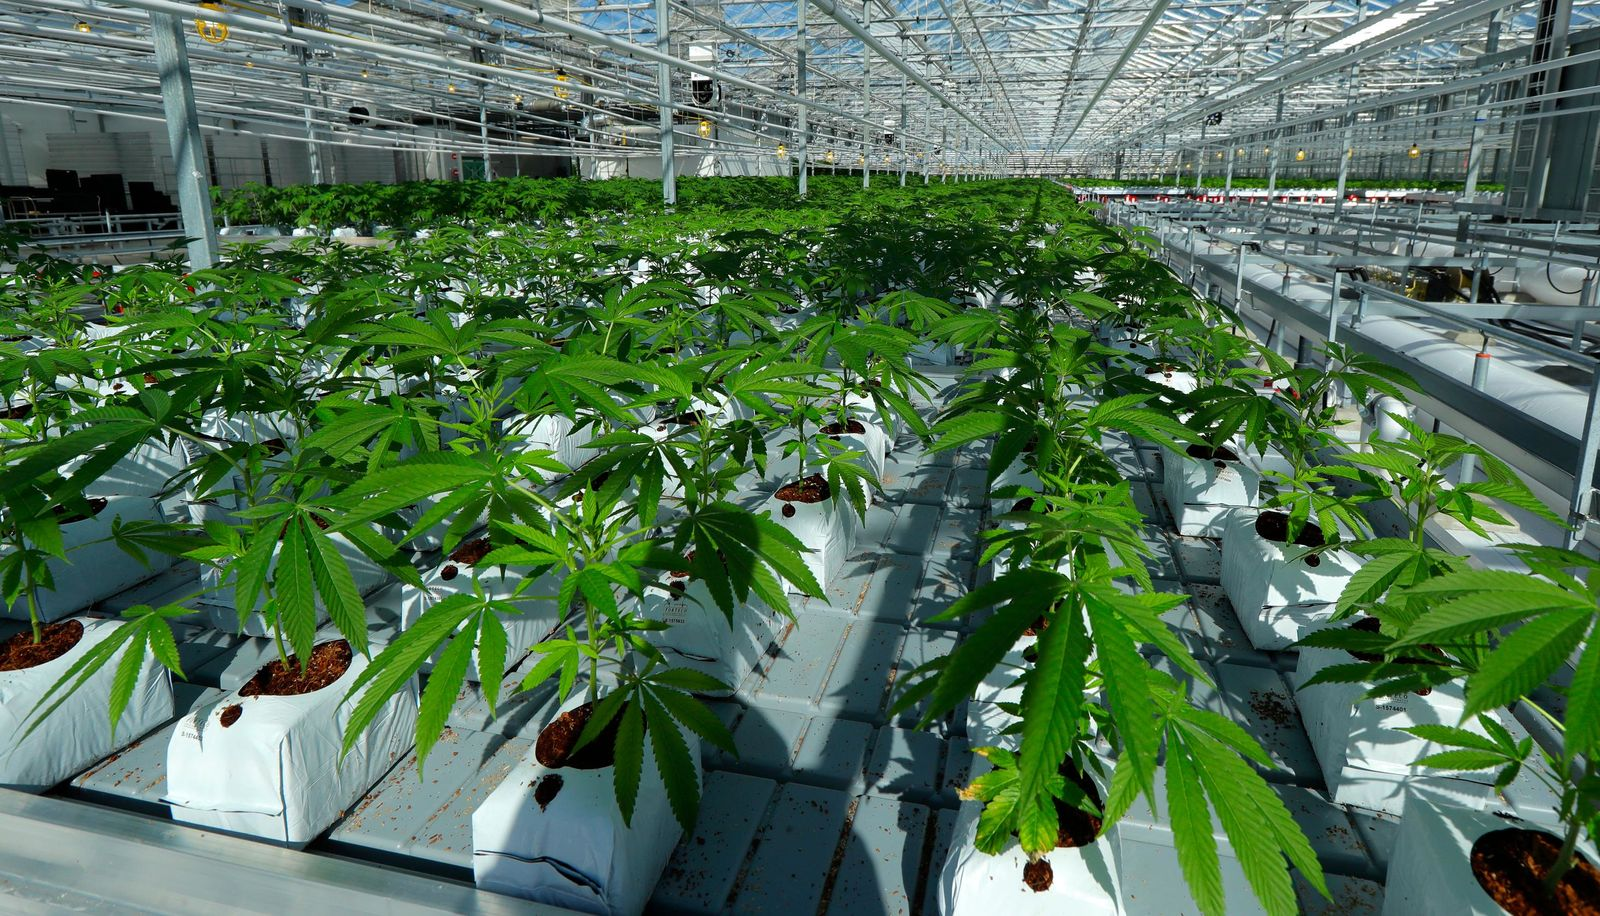 FILE - In this Sept. 25, 2018 file photo, marijuana plants grow in a tomato greenhouse being renovated to grow pot in Delta, British Columbia. The legal marijuana industry exploded in 2018, pushing its way further into the cultural and financial mainstream in the U.S. and beyond. (AP Photo/Ted S. Warren, File)